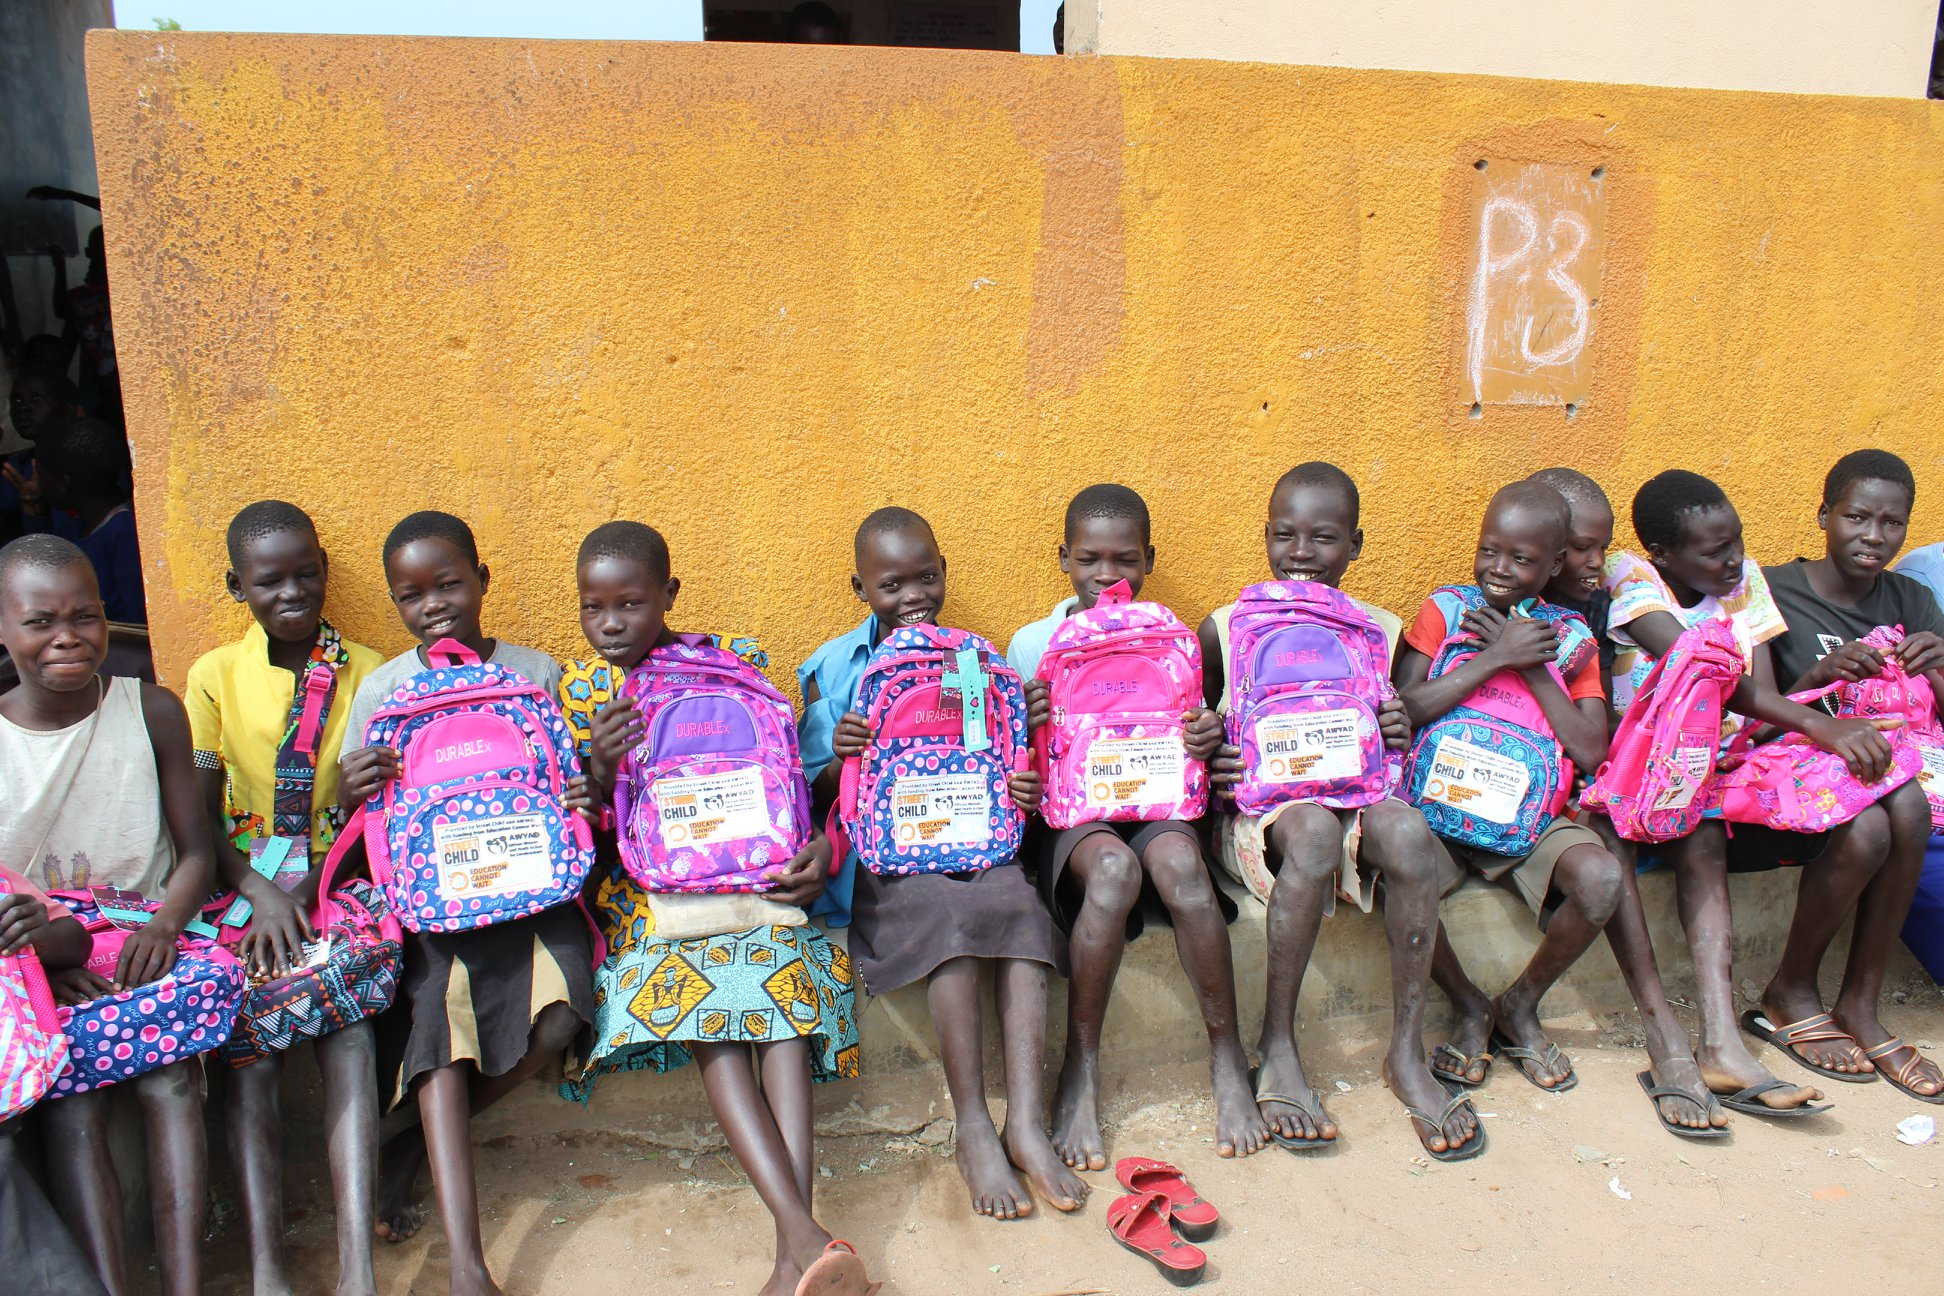 8-6-19 Rucksacks and materials Uganda iii.jpg